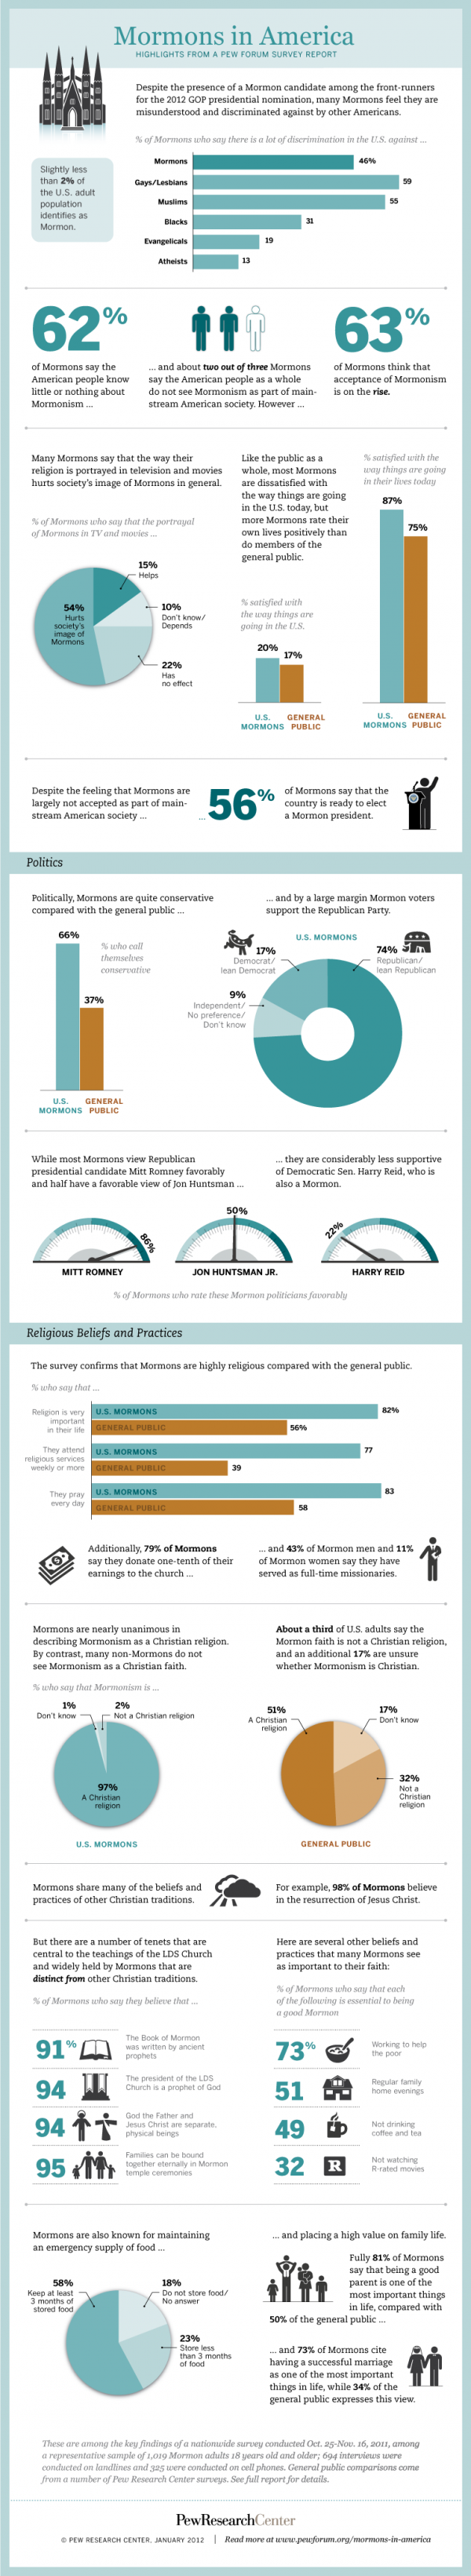 Mormons in American Infographic